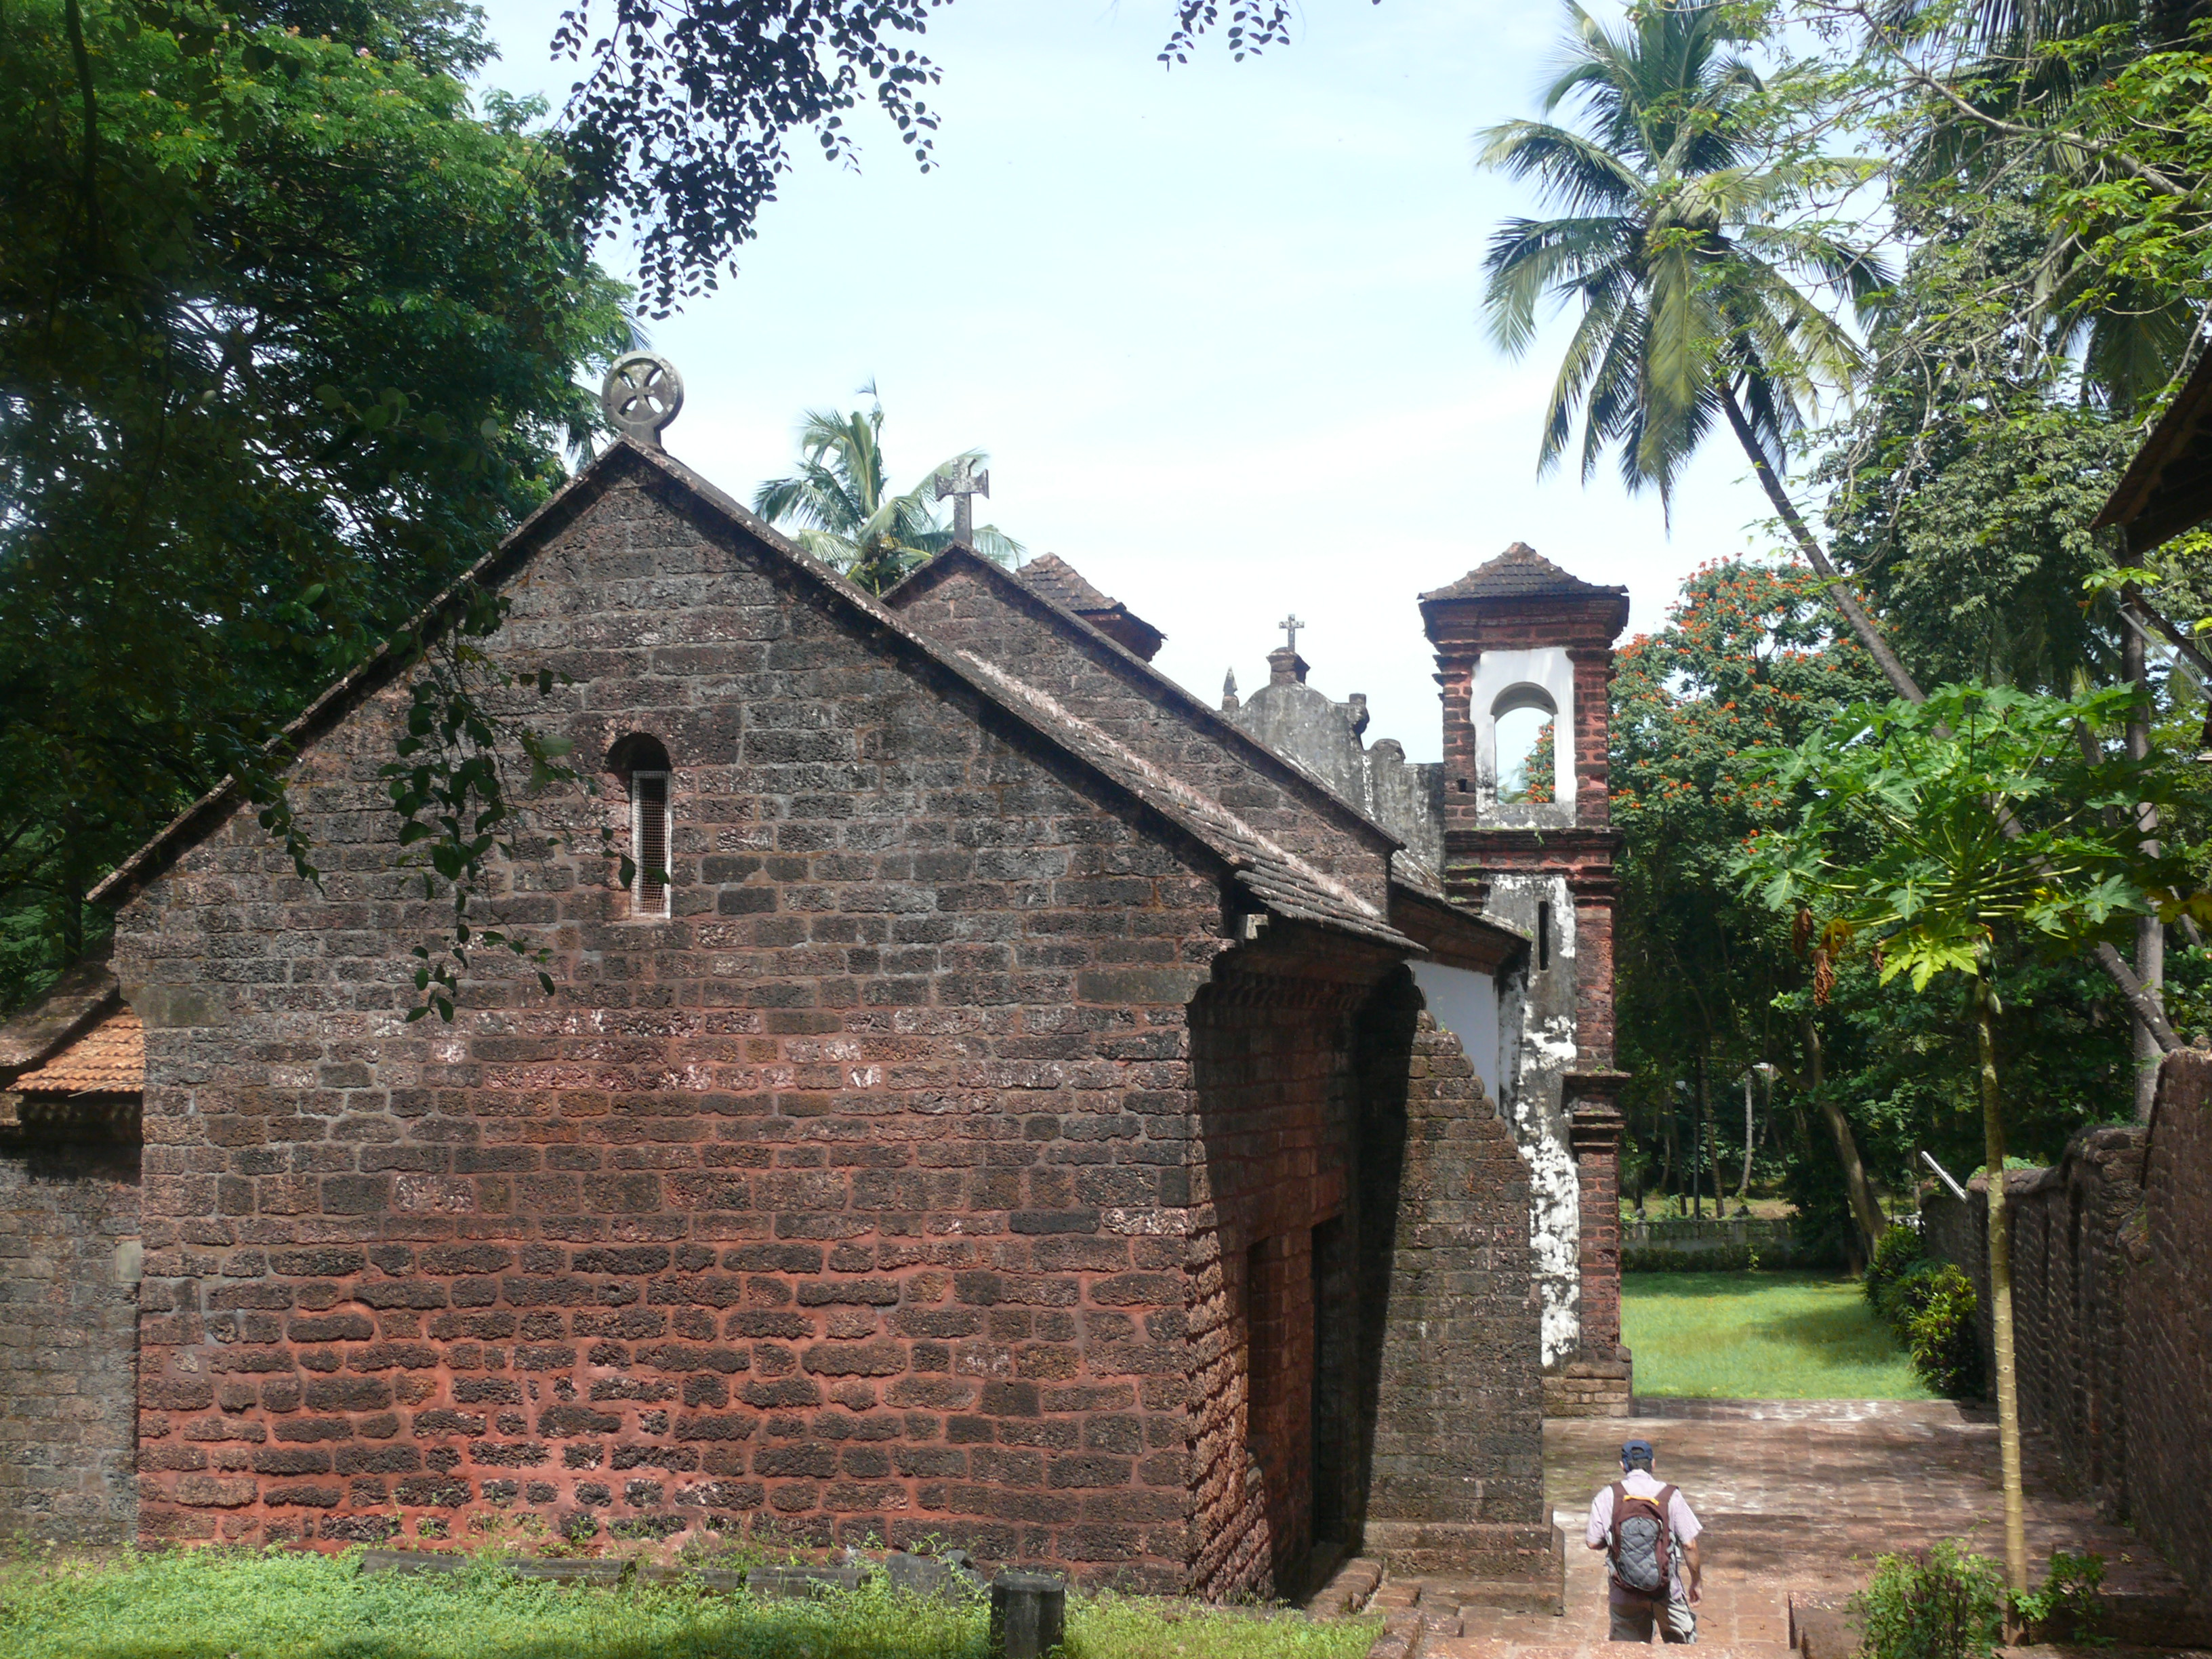 Chapel of St. Catherine - The Chapel of St Catherine, Old Goa